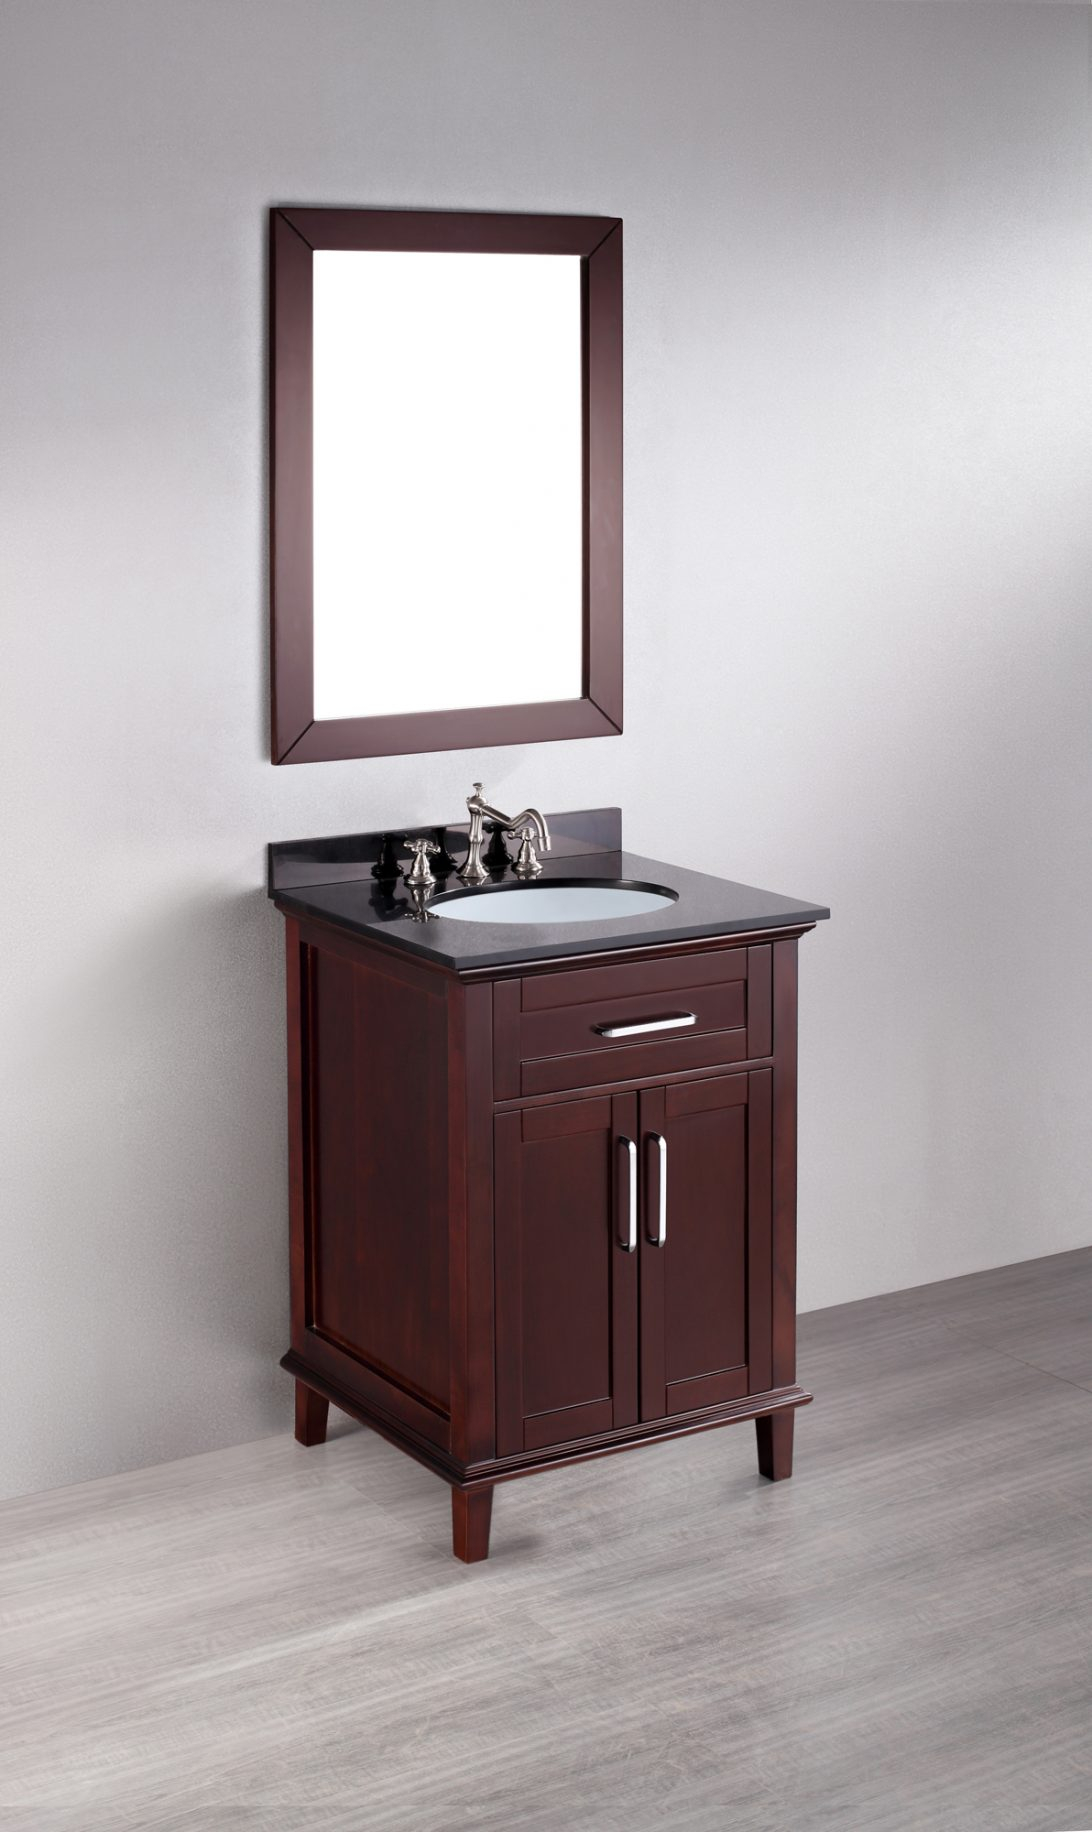 Inspirational Top 40 Fantastic Bath Vanity Walmart Bathroom Cabinet Basin throughout Review Walmart Bathroom Vanities